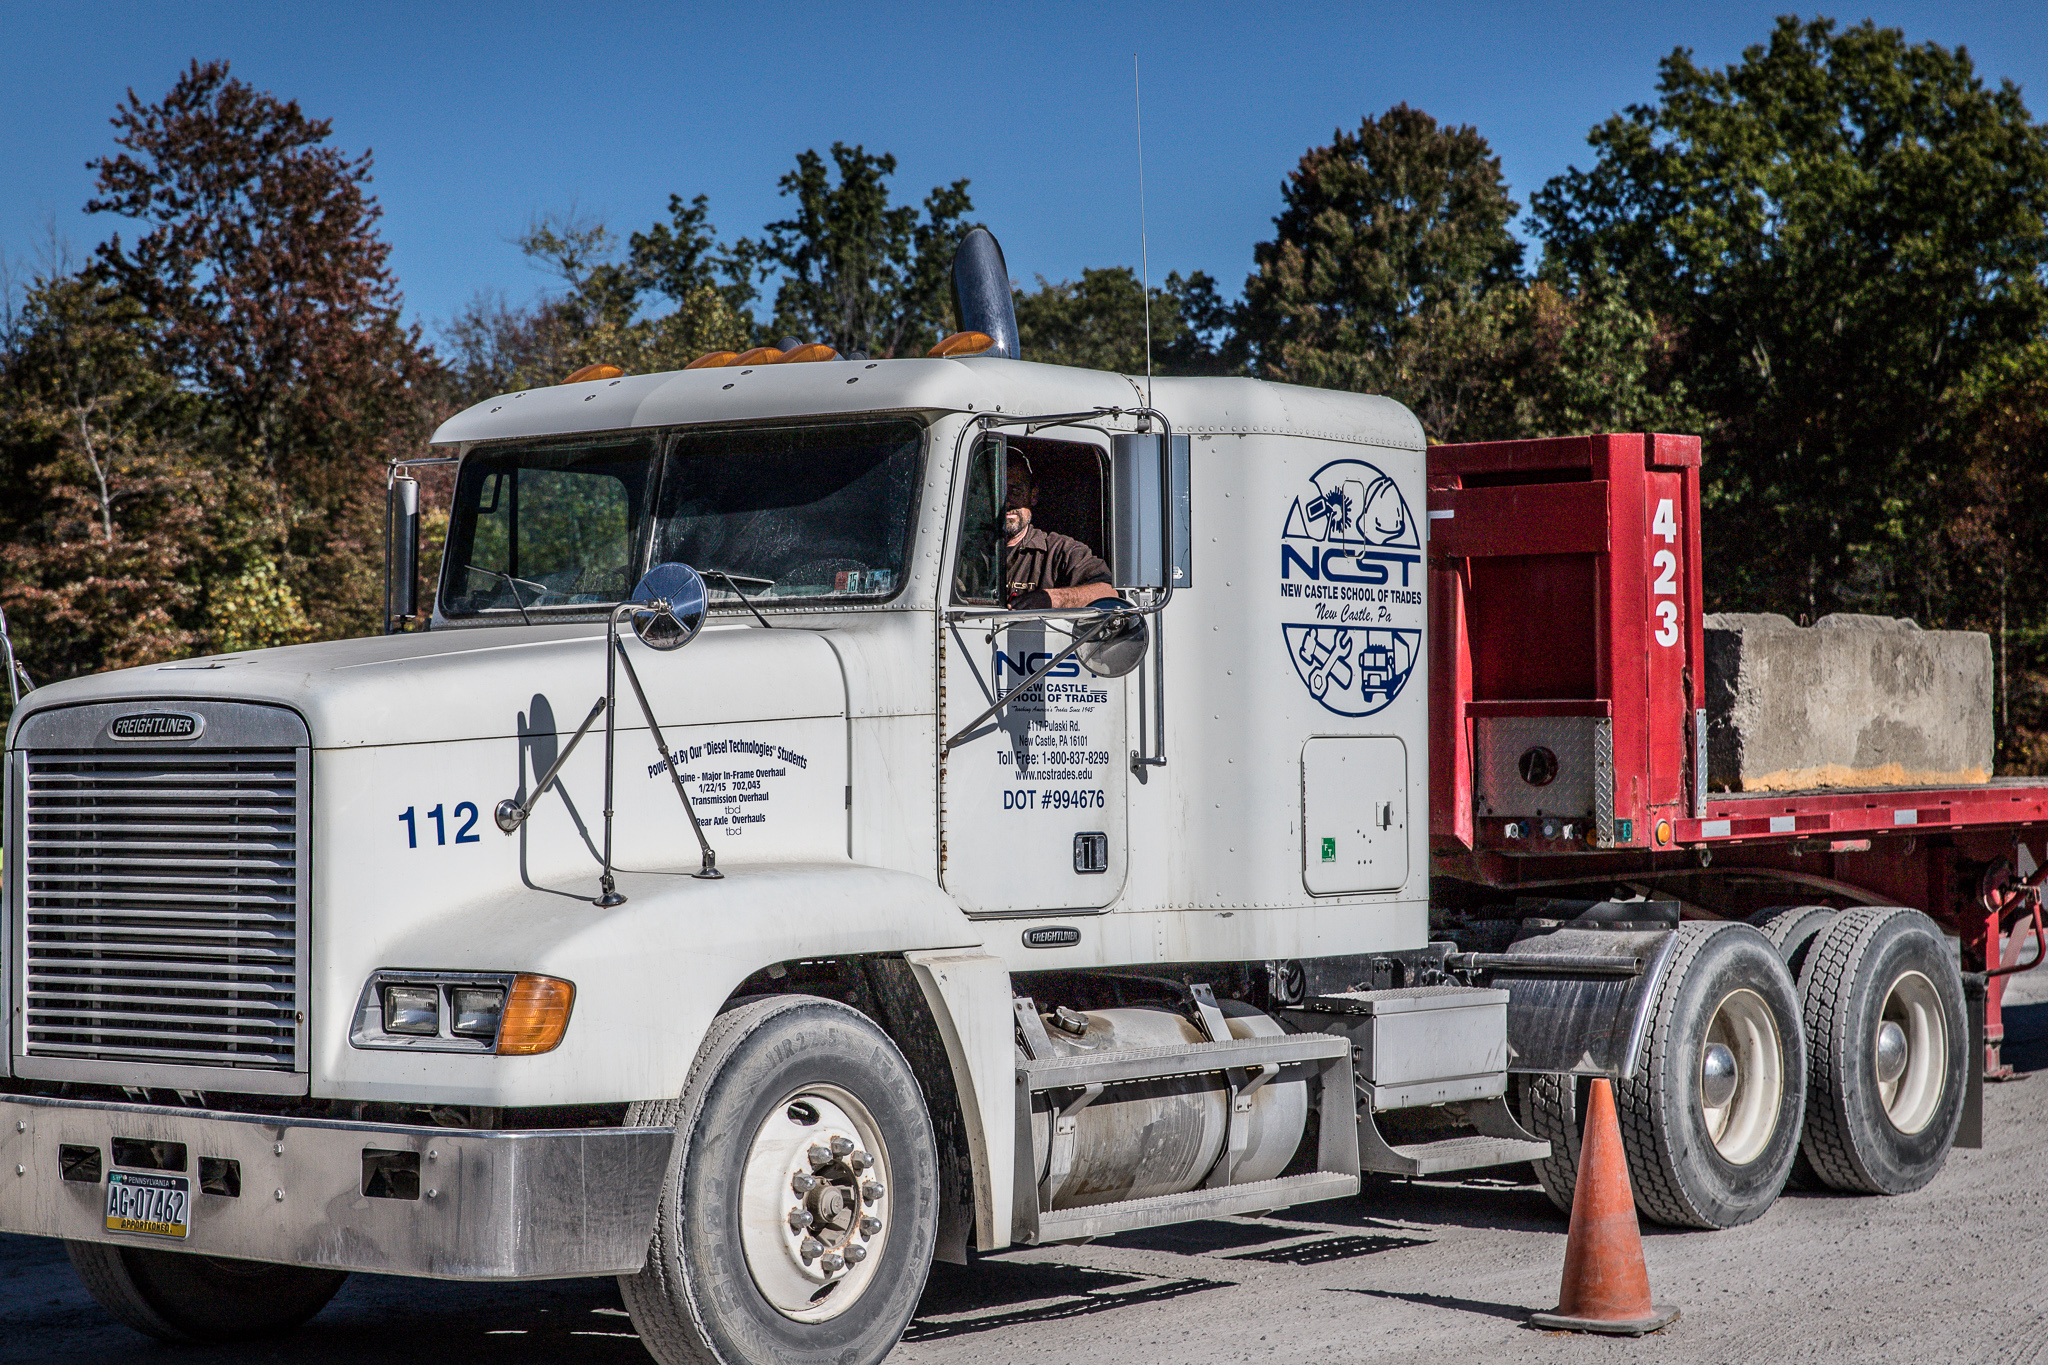 Commercial Truck Driving - The objective of the commercial truck driving course is to qualify students for entry level positions as drivers in over-the-road or local driving vehicles. The focus of the course is on basic information about trucks, truck driving, and the trucking industry and the fundamentals of operating trucks and tractor trailers. No prior education or experience with trucks is required. The student, however, must meet the driver qualifications set forth by the Federal Motor Carrier Safety Administration (FMCSA) and pass the physical examination requirements set forth by the Department of Transportation (D.O.T.).